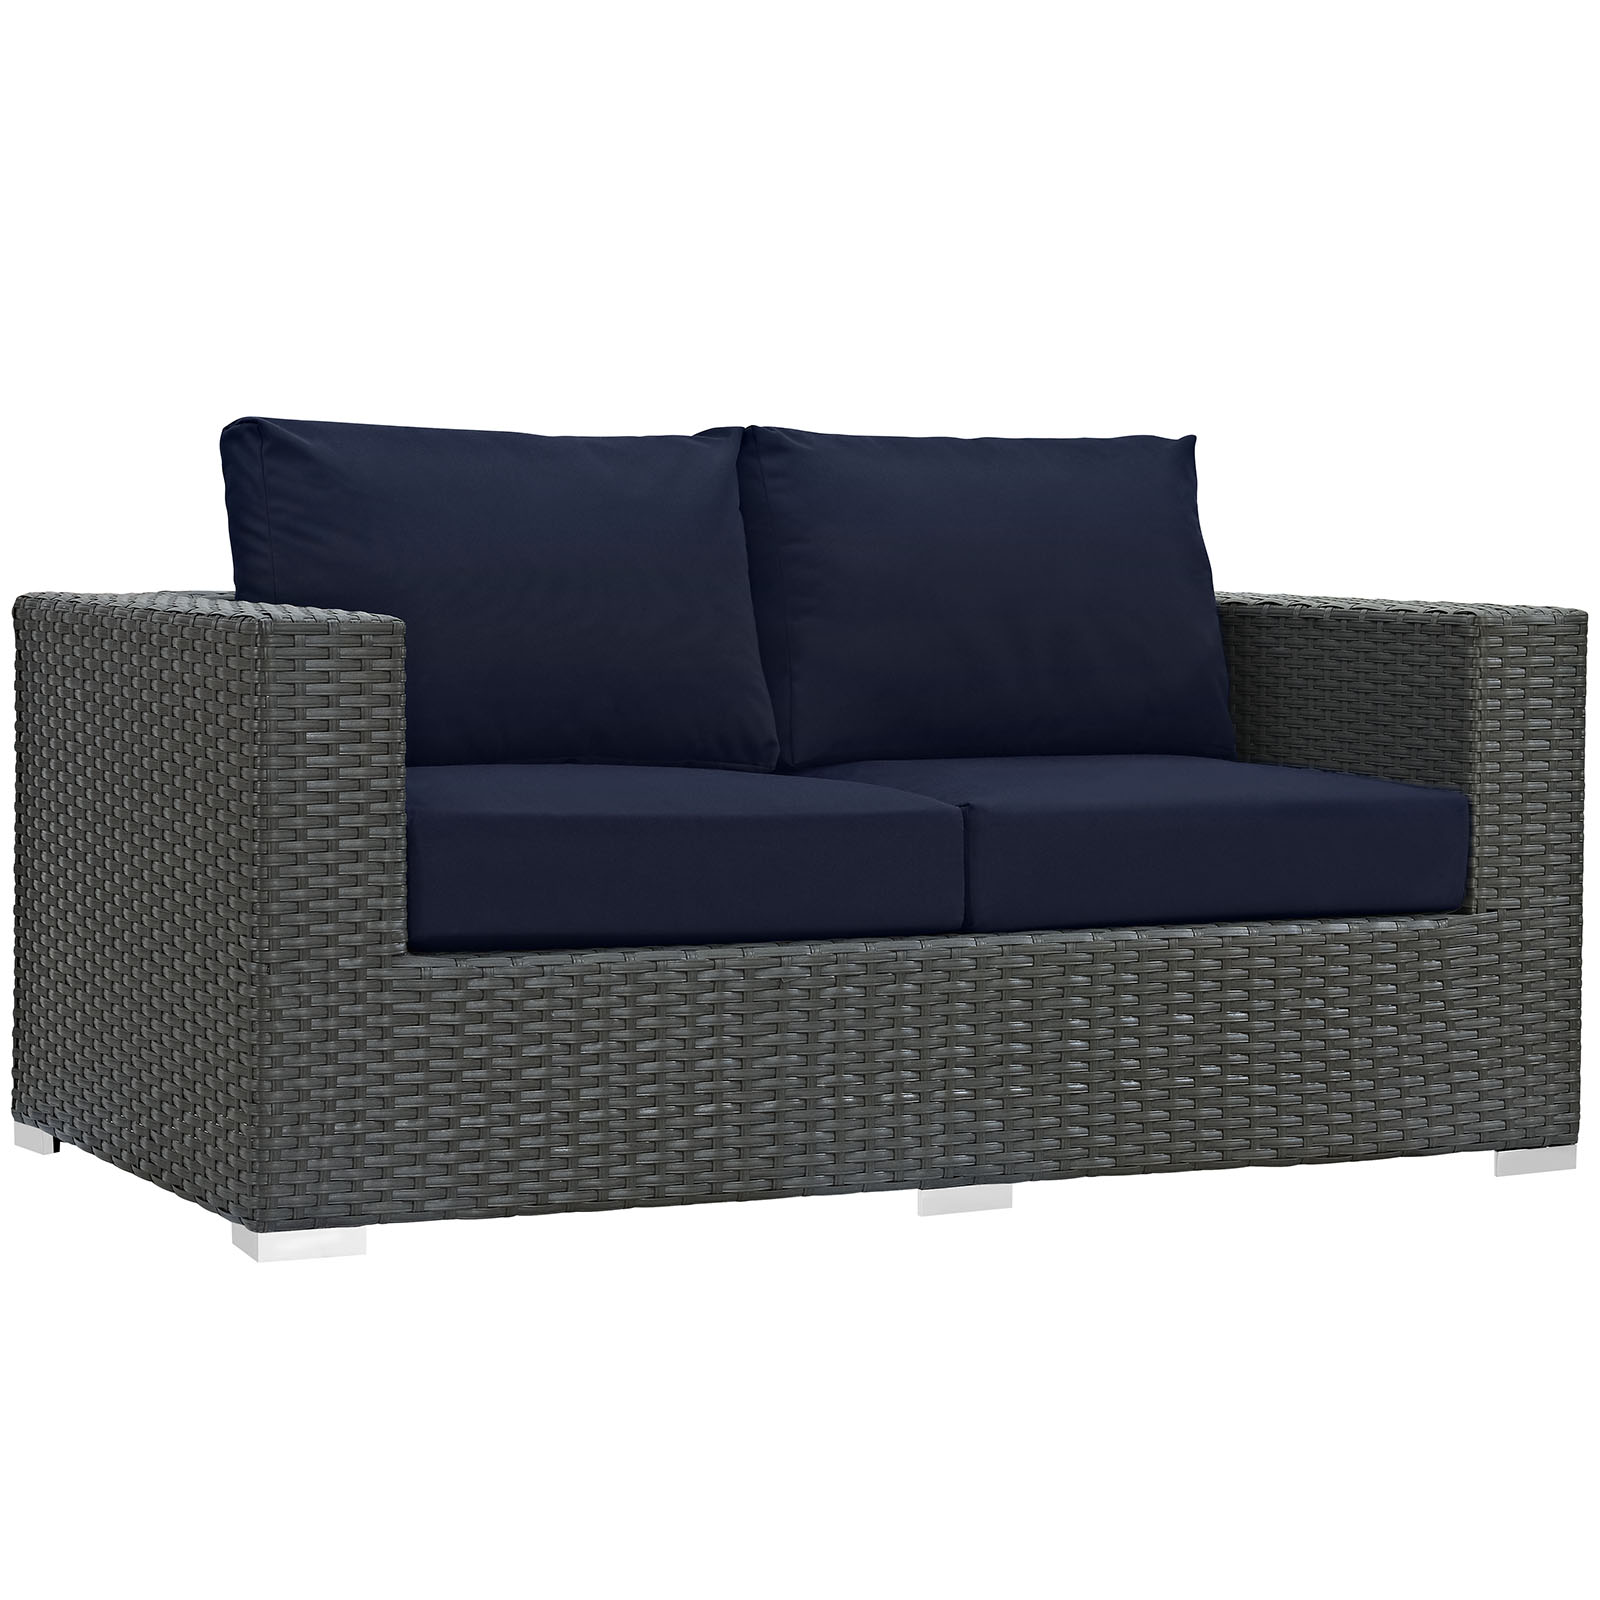 Modern Contemporary Urban Design Outdoor Patio Balcony Loveseat Sofa, Navy Blue, Rattan